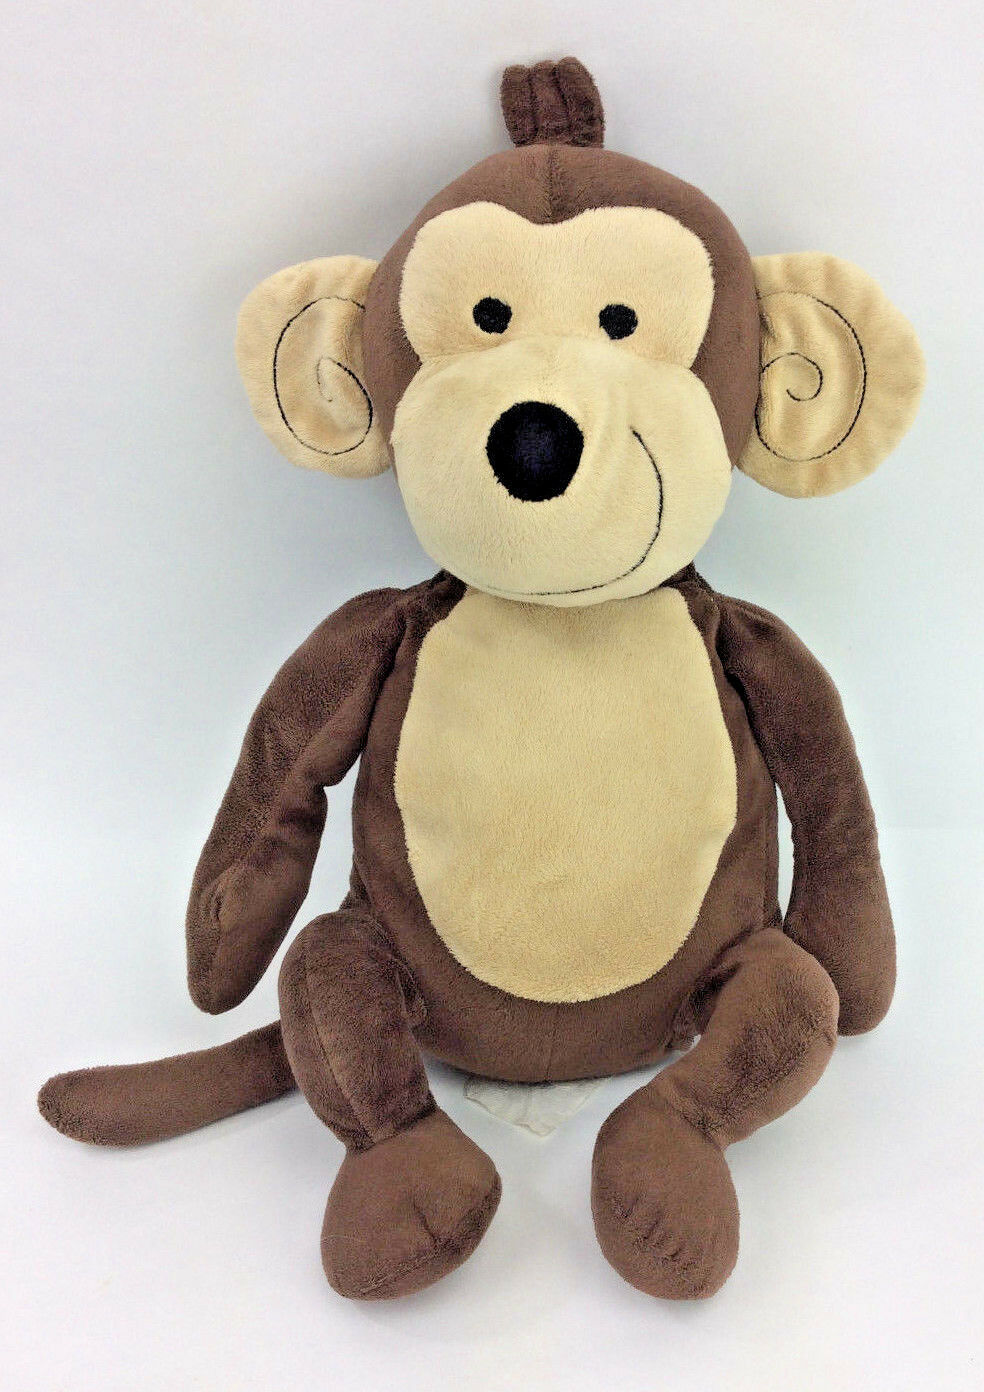 Kmart Monkey marrone Pillow Plush Stuffed Animal 18  Smiling Victoria Classics